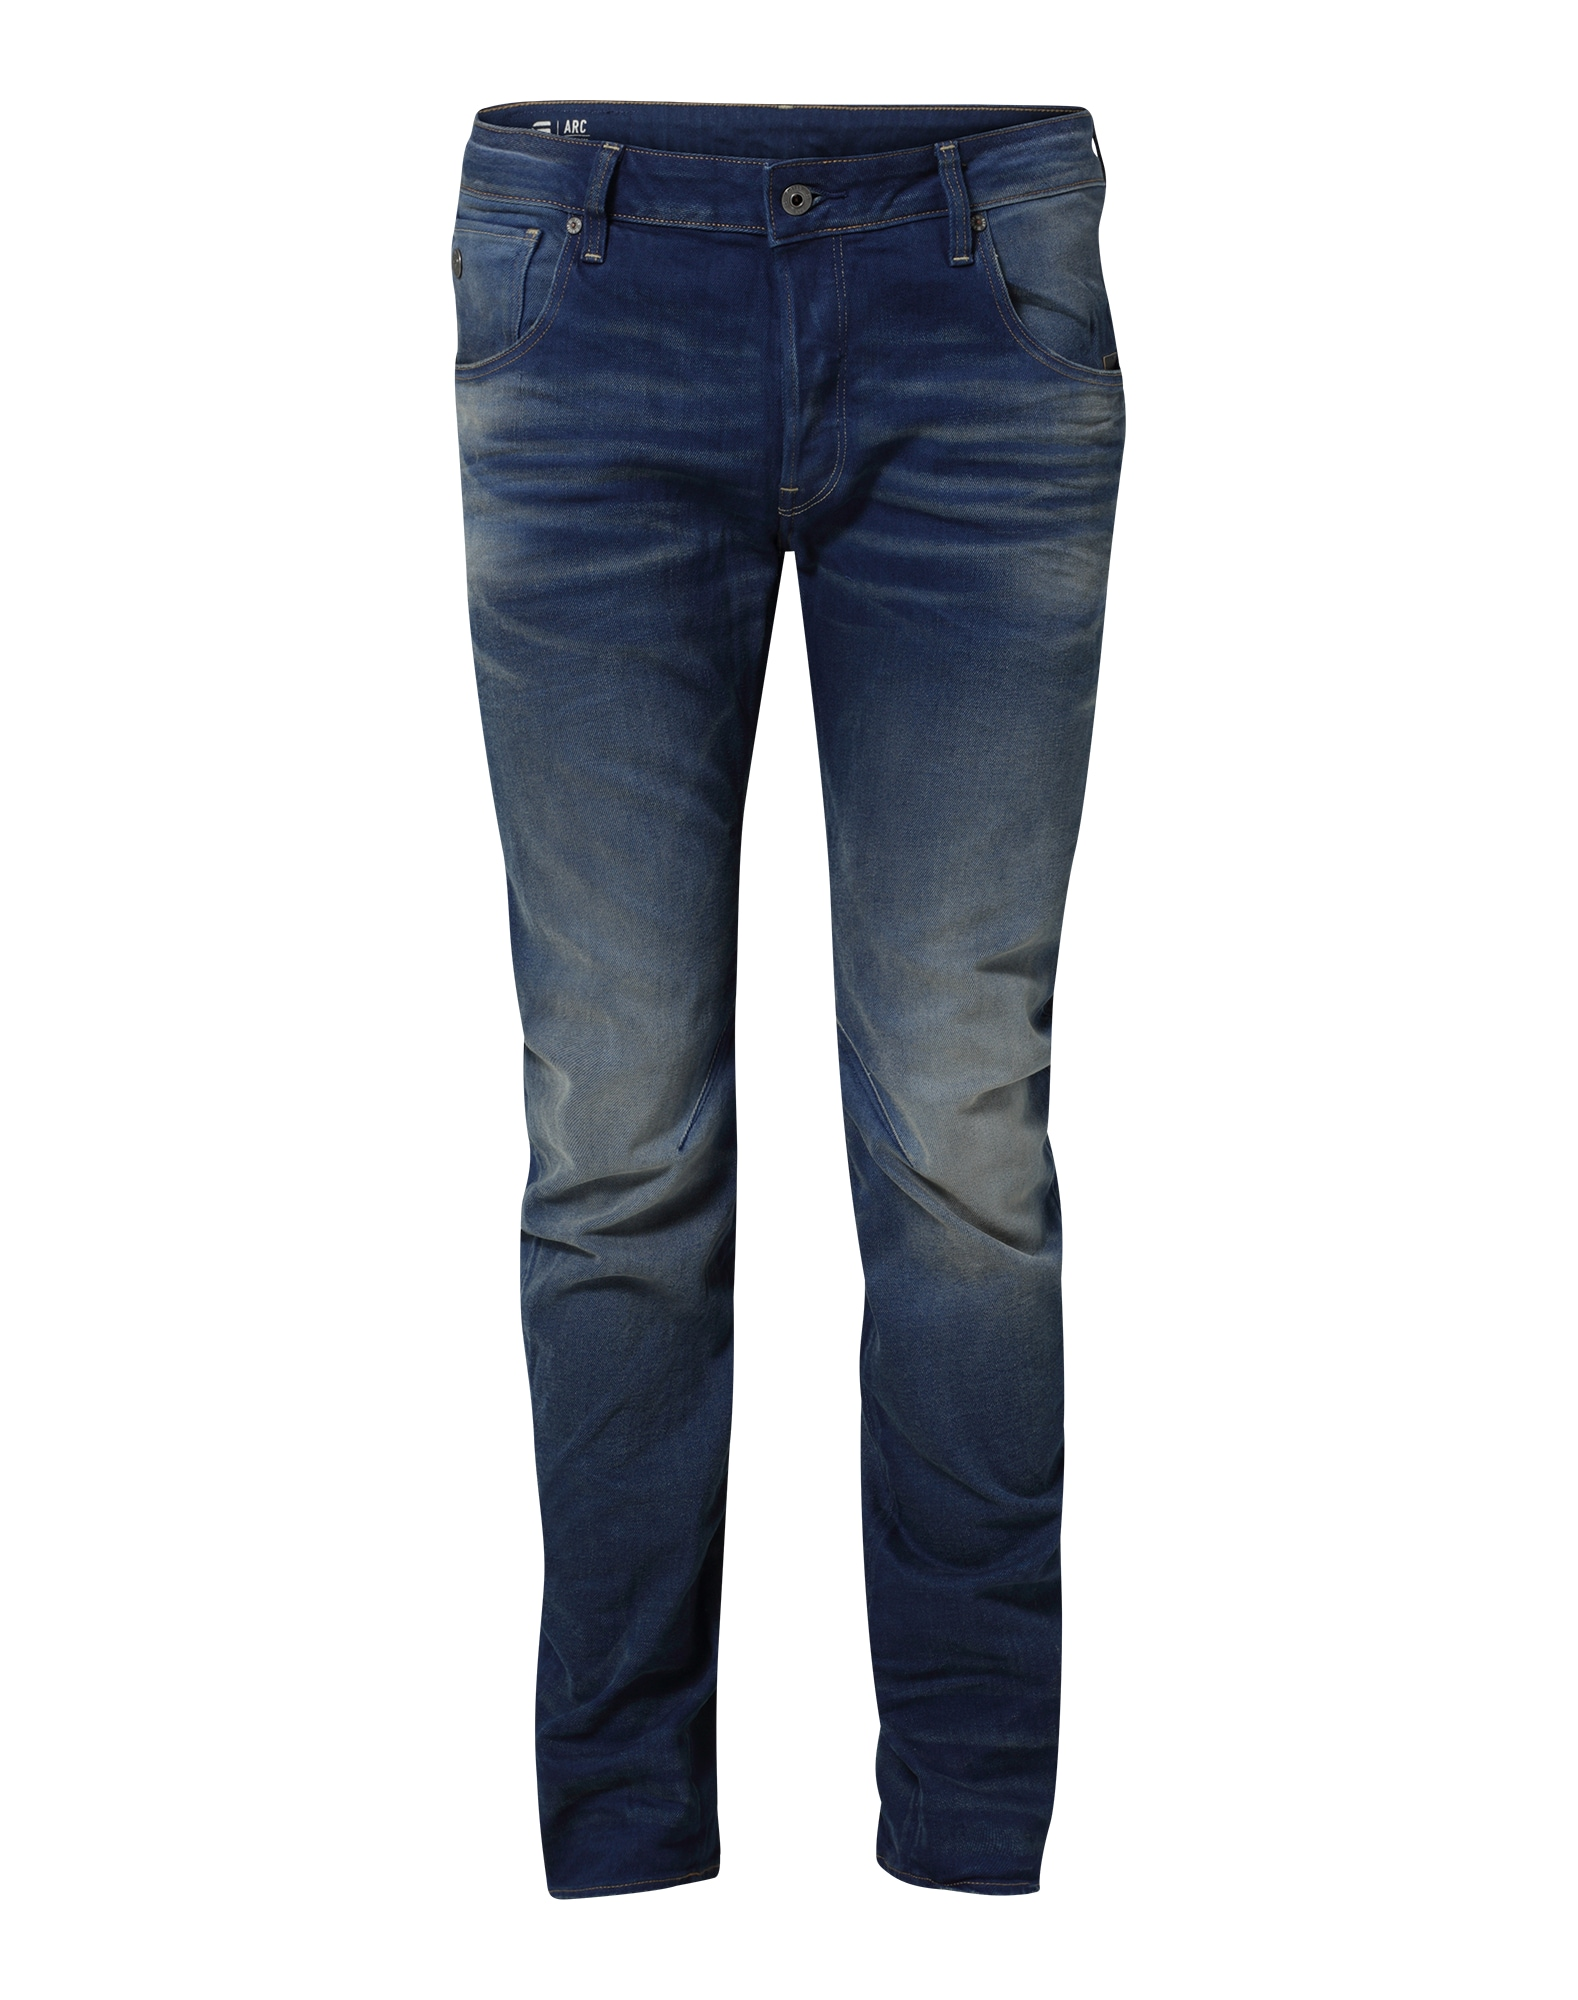 G-STAR RAW Heren Jeans Arc 3D blauw